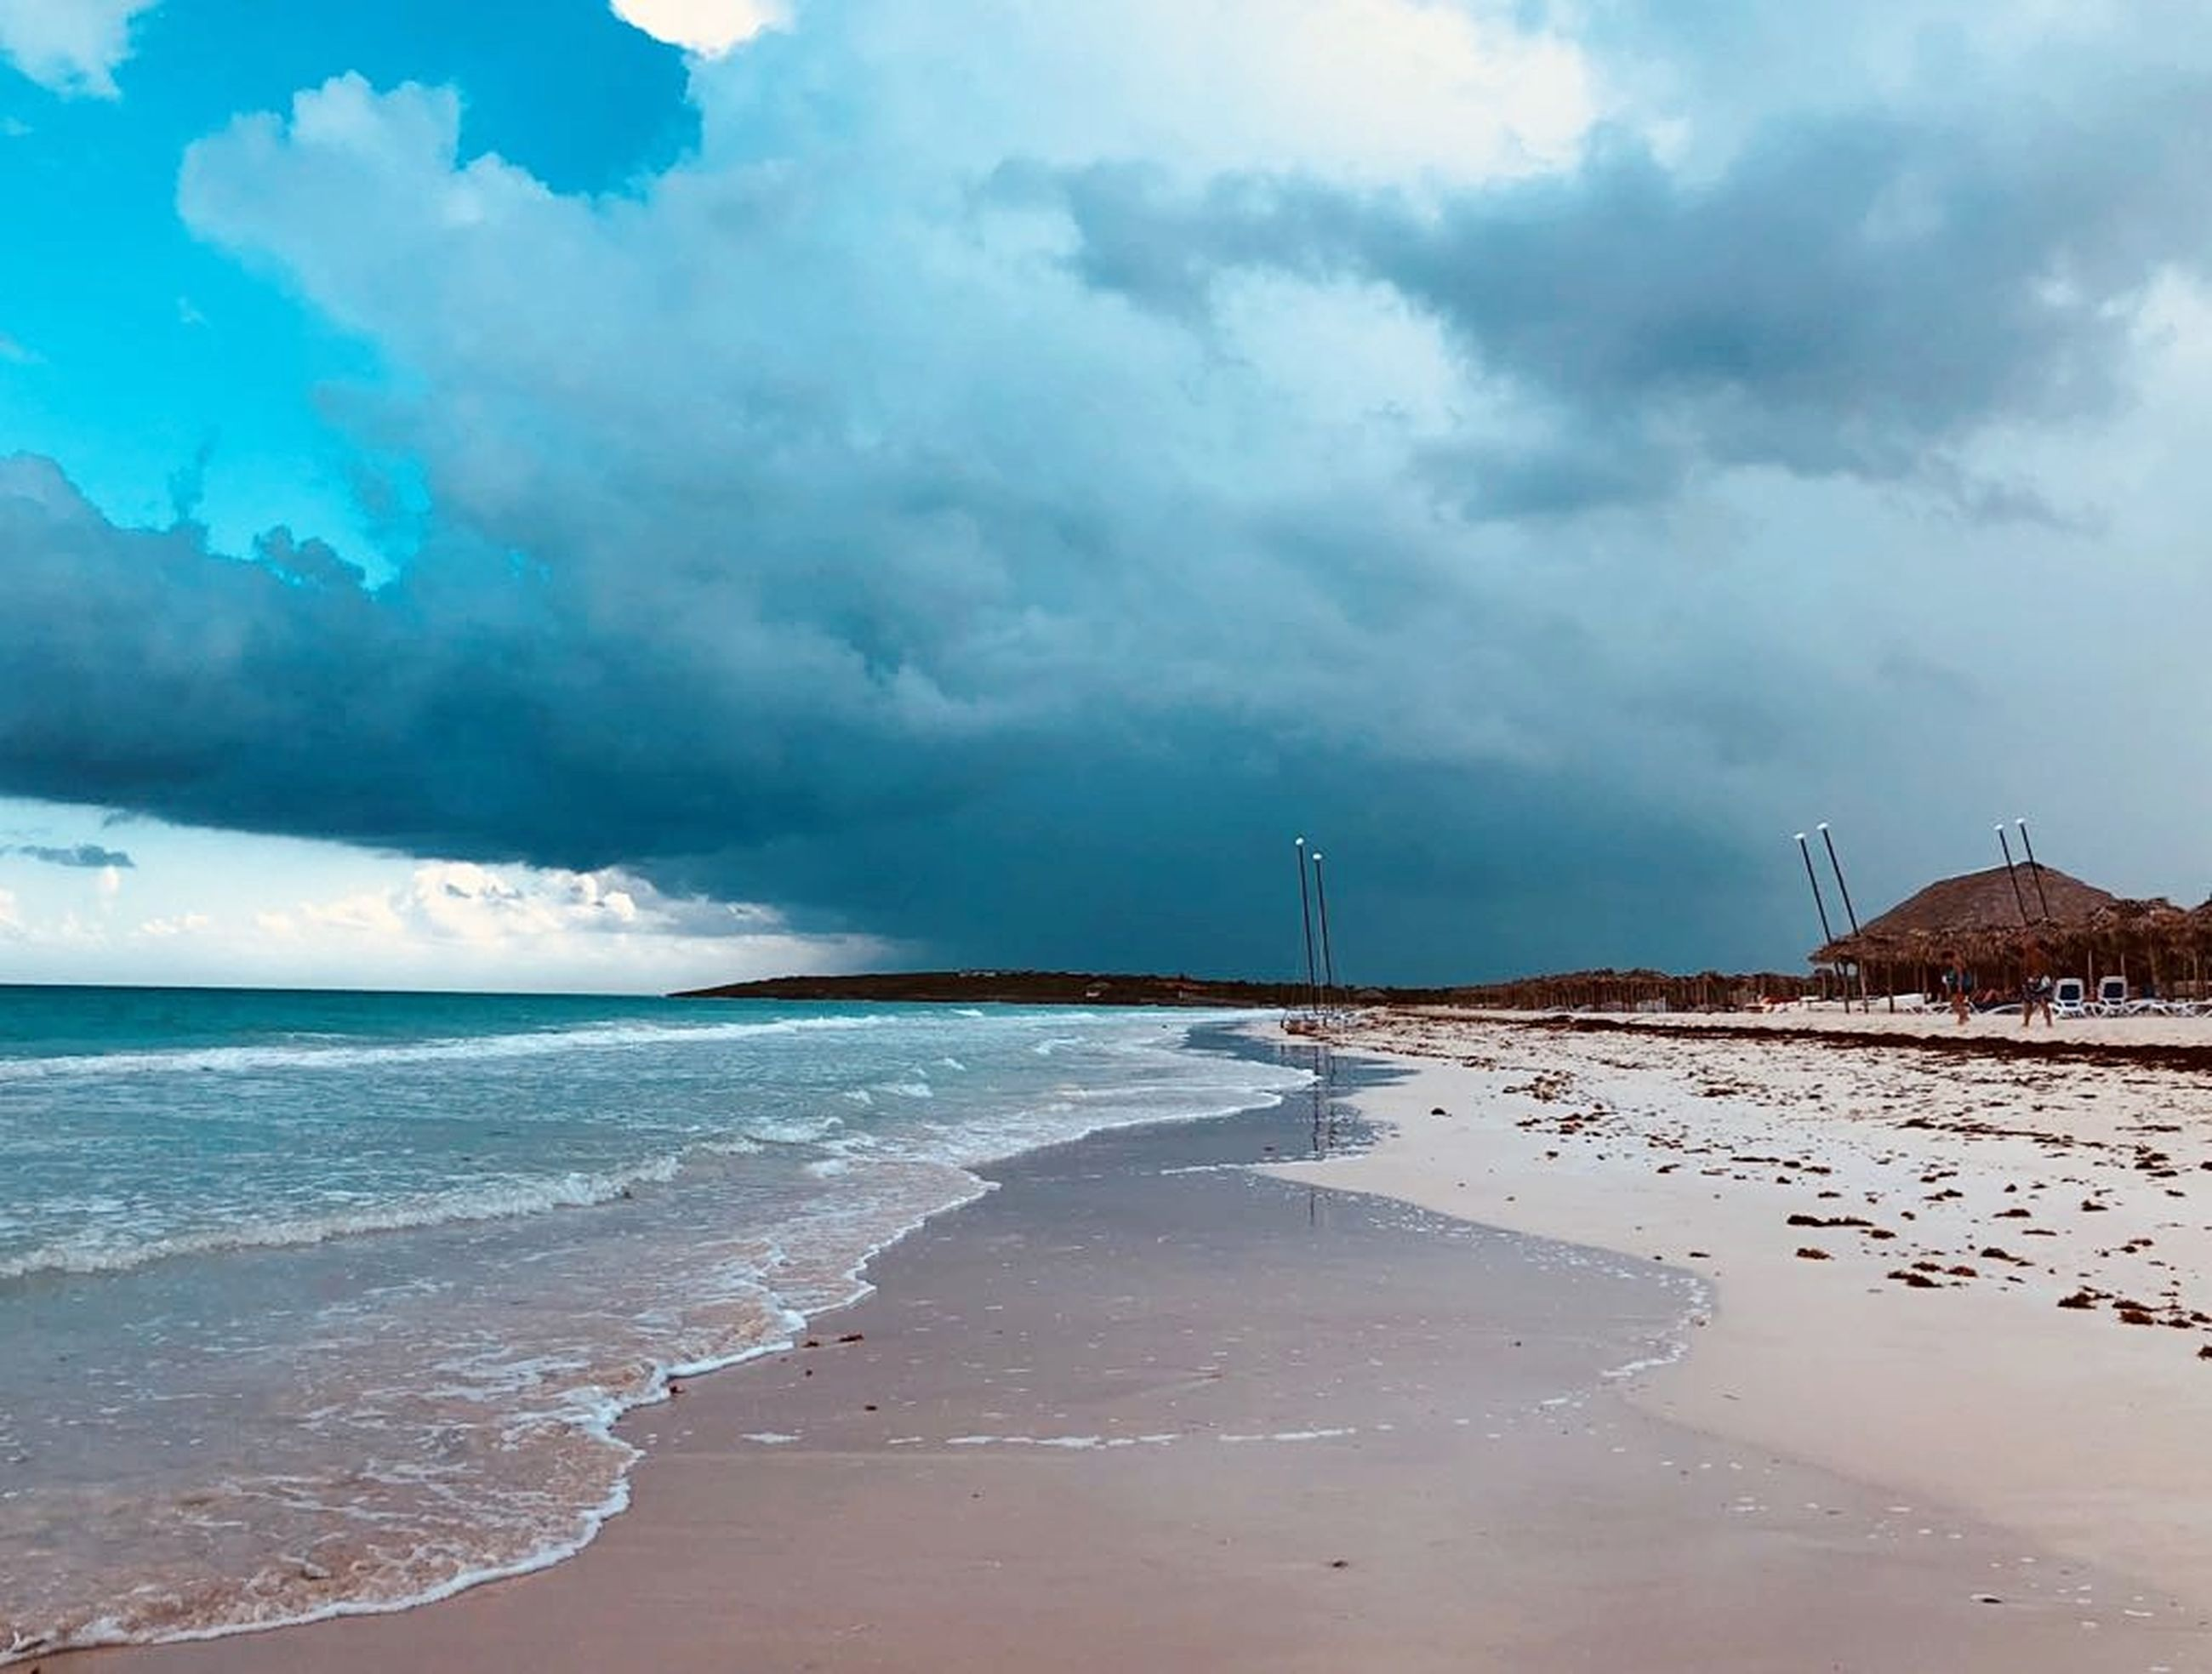 water, cloud - sky, sea, land, beach, sky, beauty in nature, scenics - nature, environment, nature, day, power in nature, wind power, tranquility, power, wind turbine, environmental conservation, tranquil scene, no people, outdoors